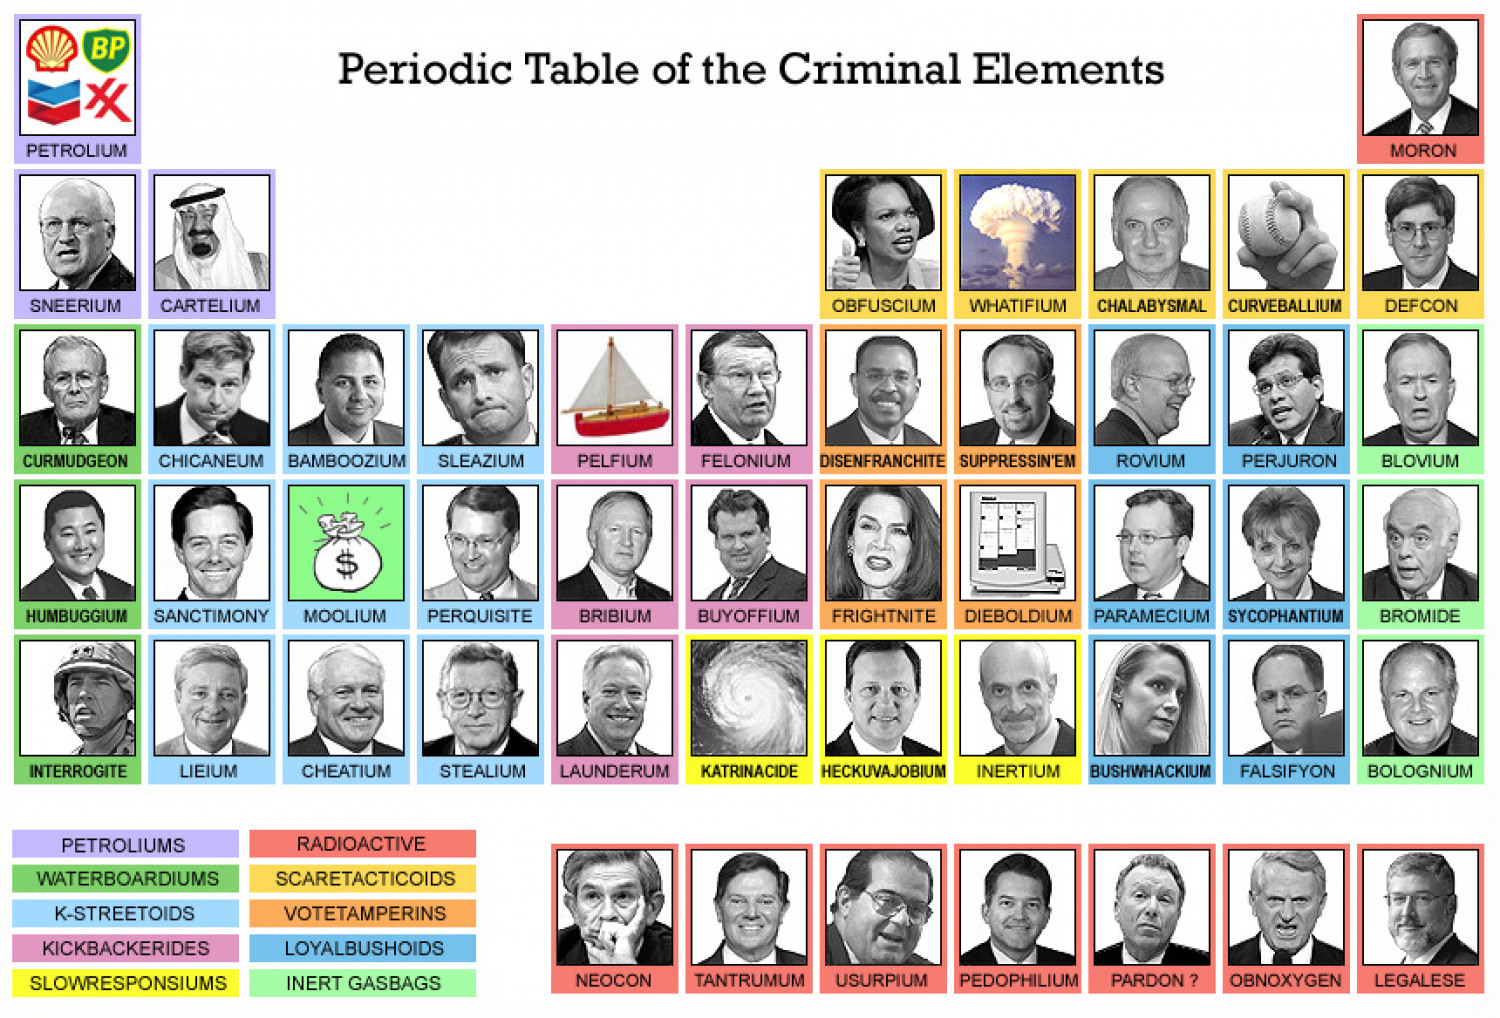 Periodic Table of Criminal Elements Infographic